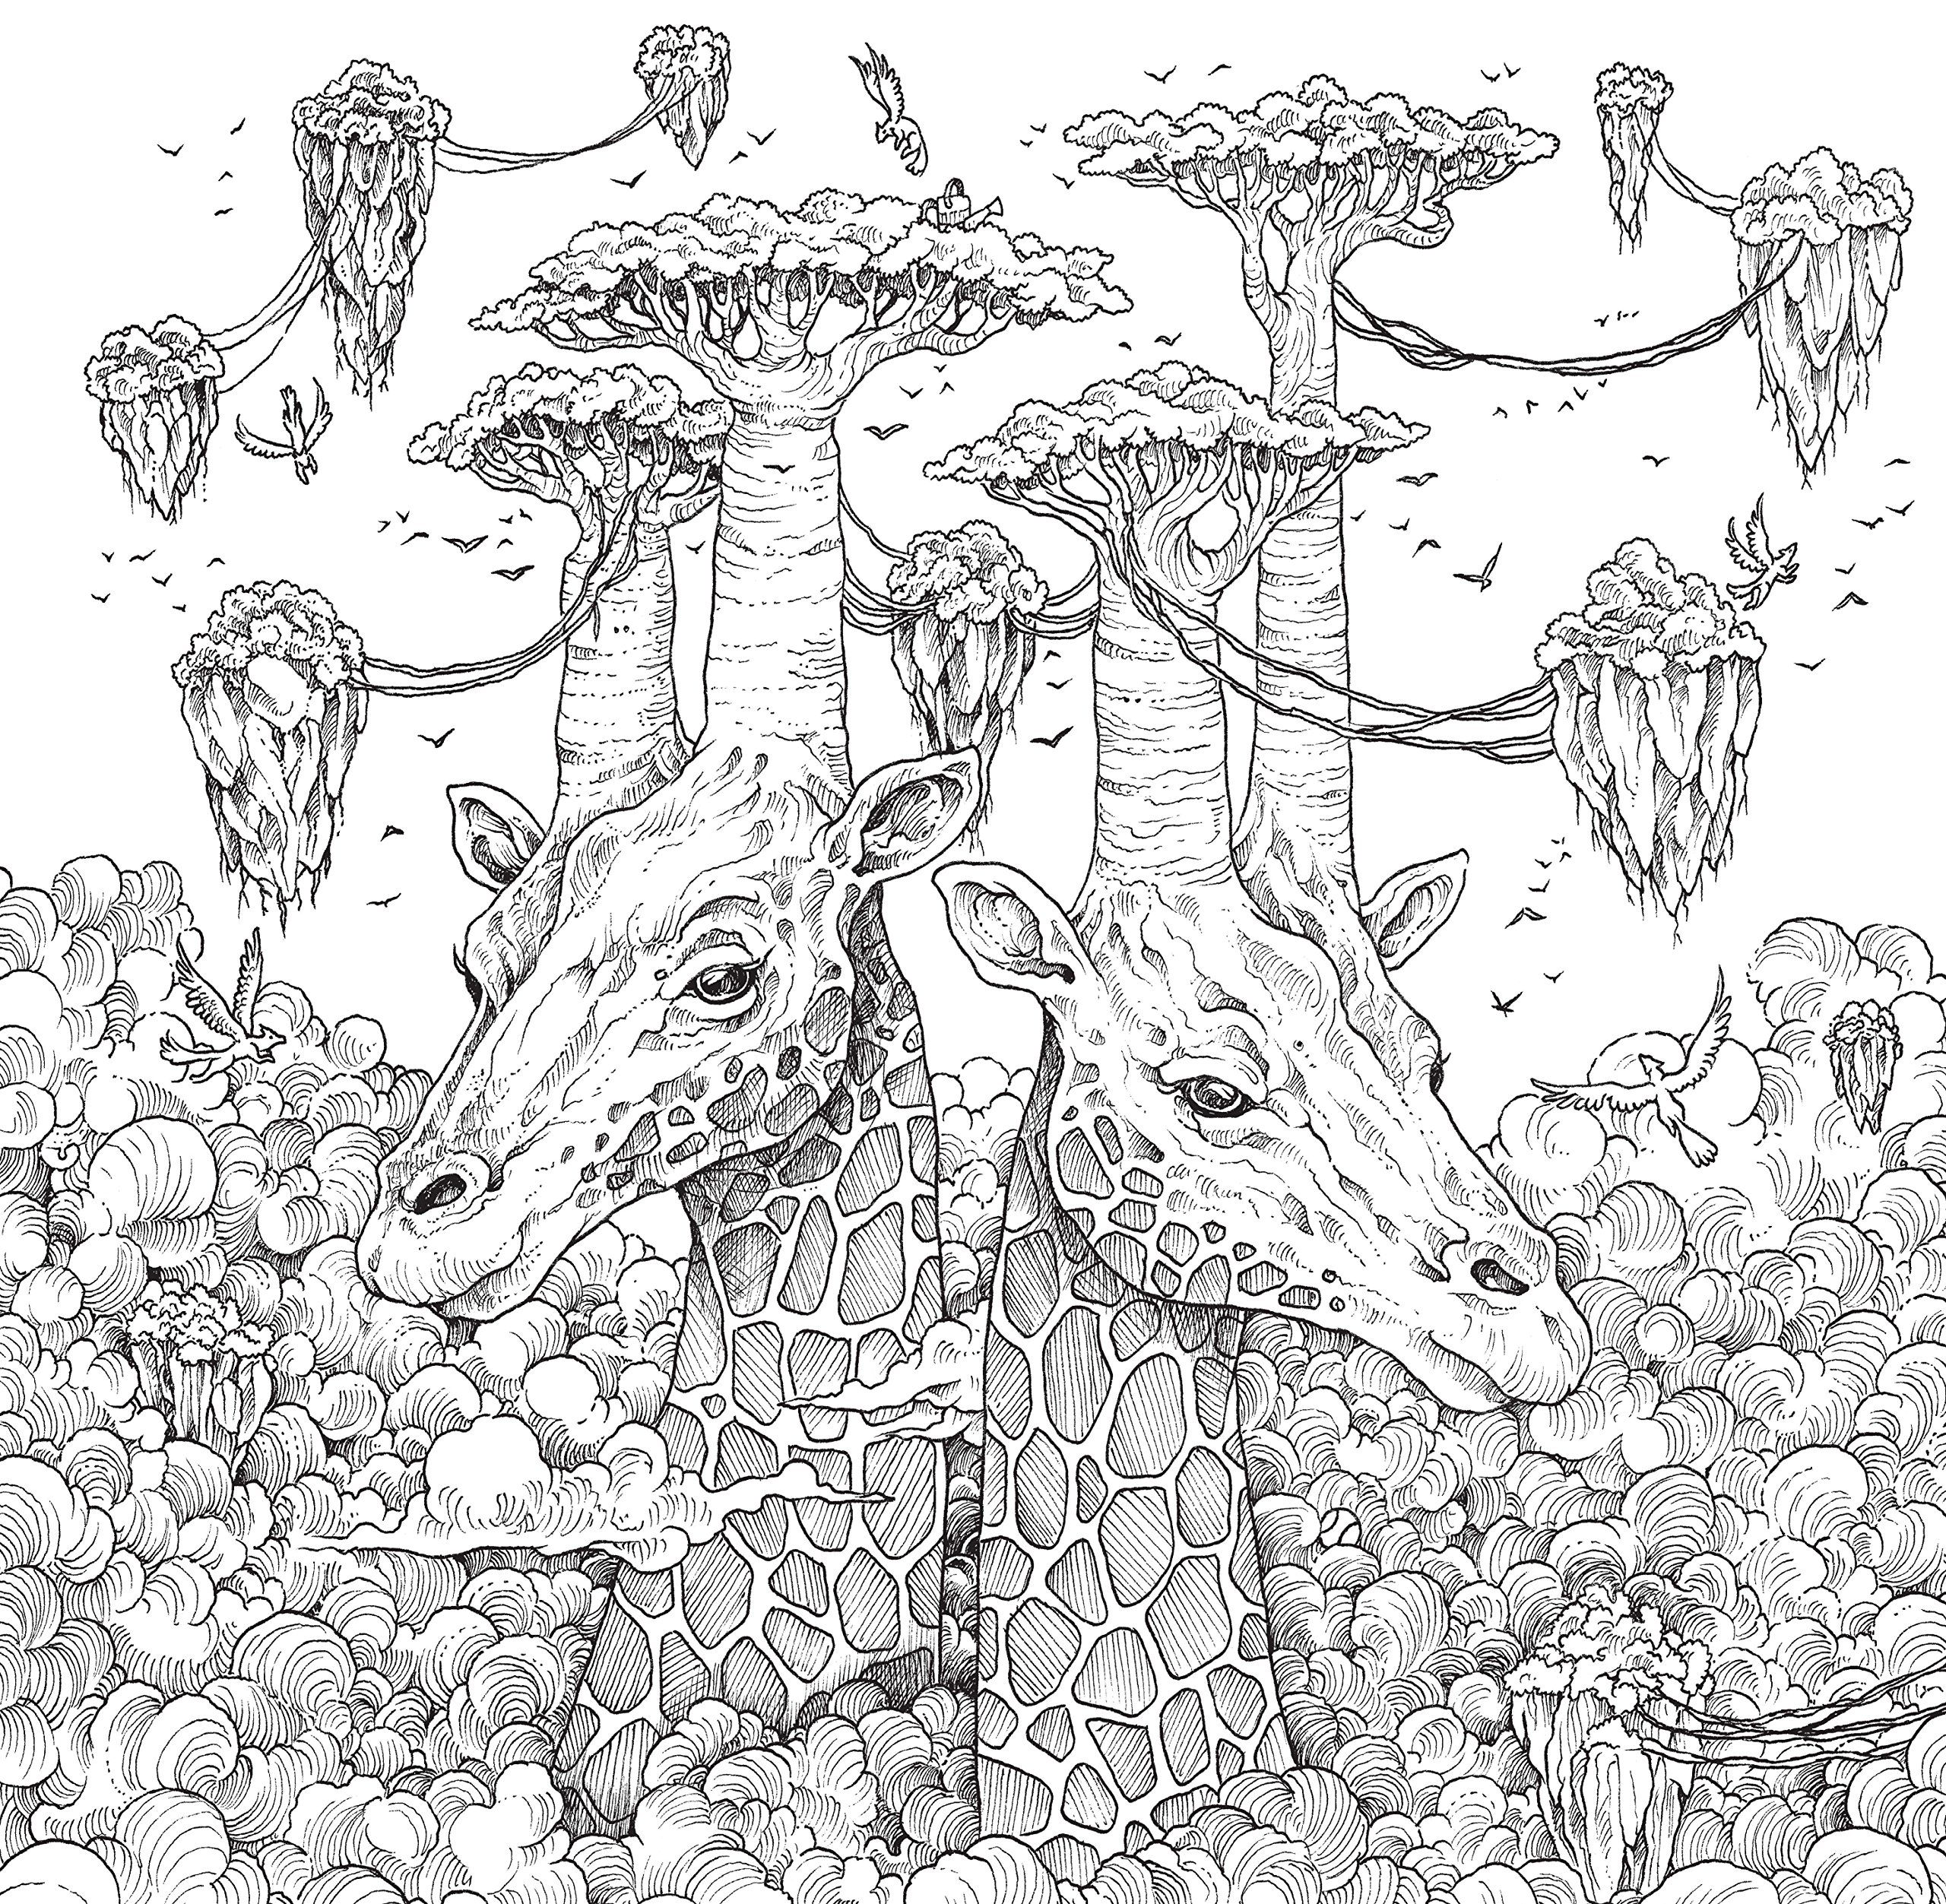 Geomorphia Animorphia Coloring Book Angel Coloring Pages Detailed Coloring Pages